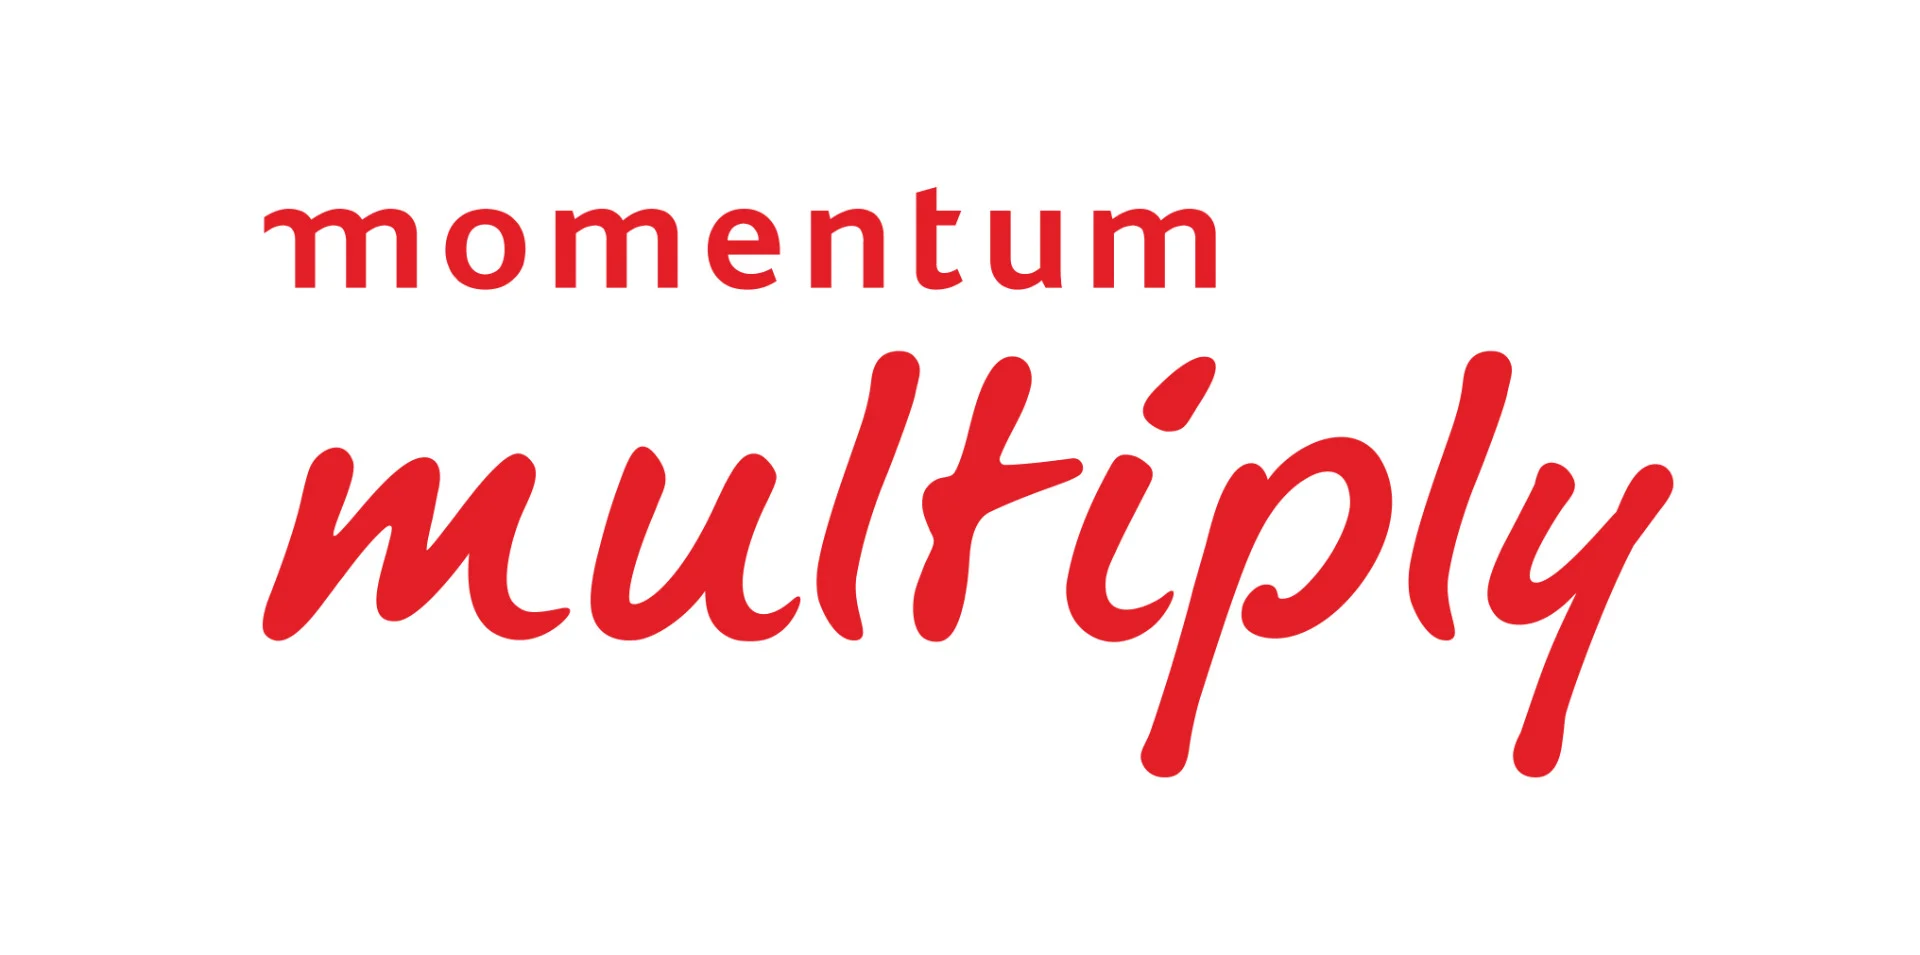 Momentum Multiply Offer More Rewards To Members During The Lockdown